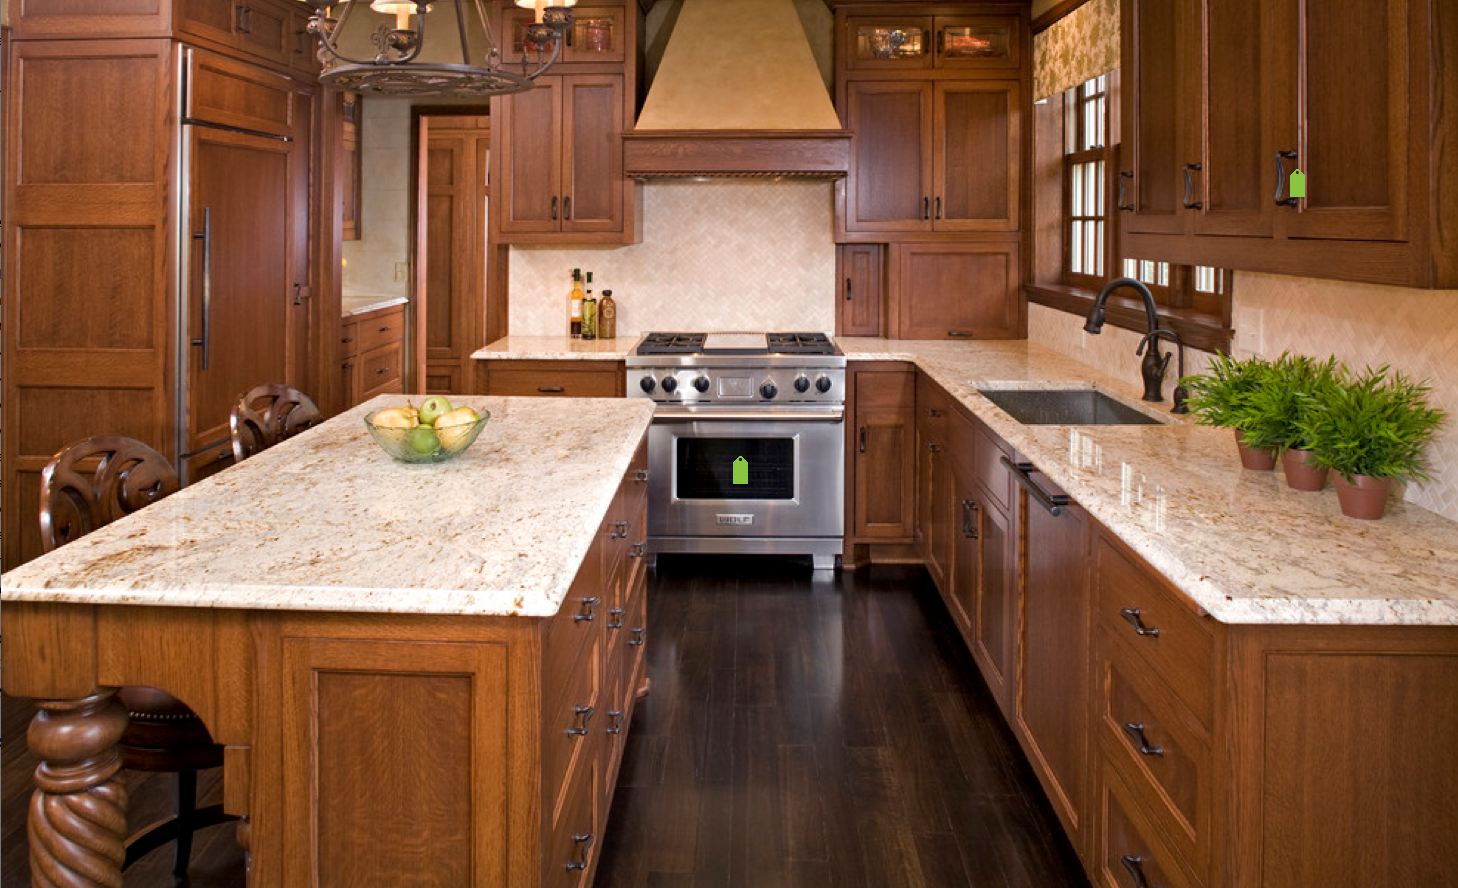 Like The Cabinet Color With Tops Cream With Cinnamon Countertops Kitchen Remodel Countertops Oak Kitchen Kitchen Remodel Small